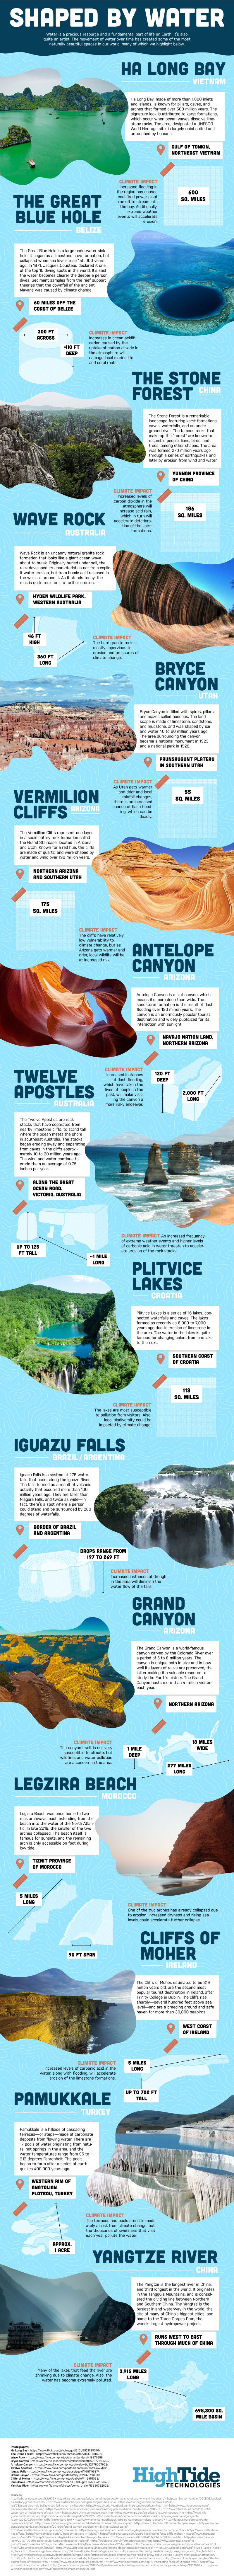 Shaped By Water Infographic - High Tide Technologies